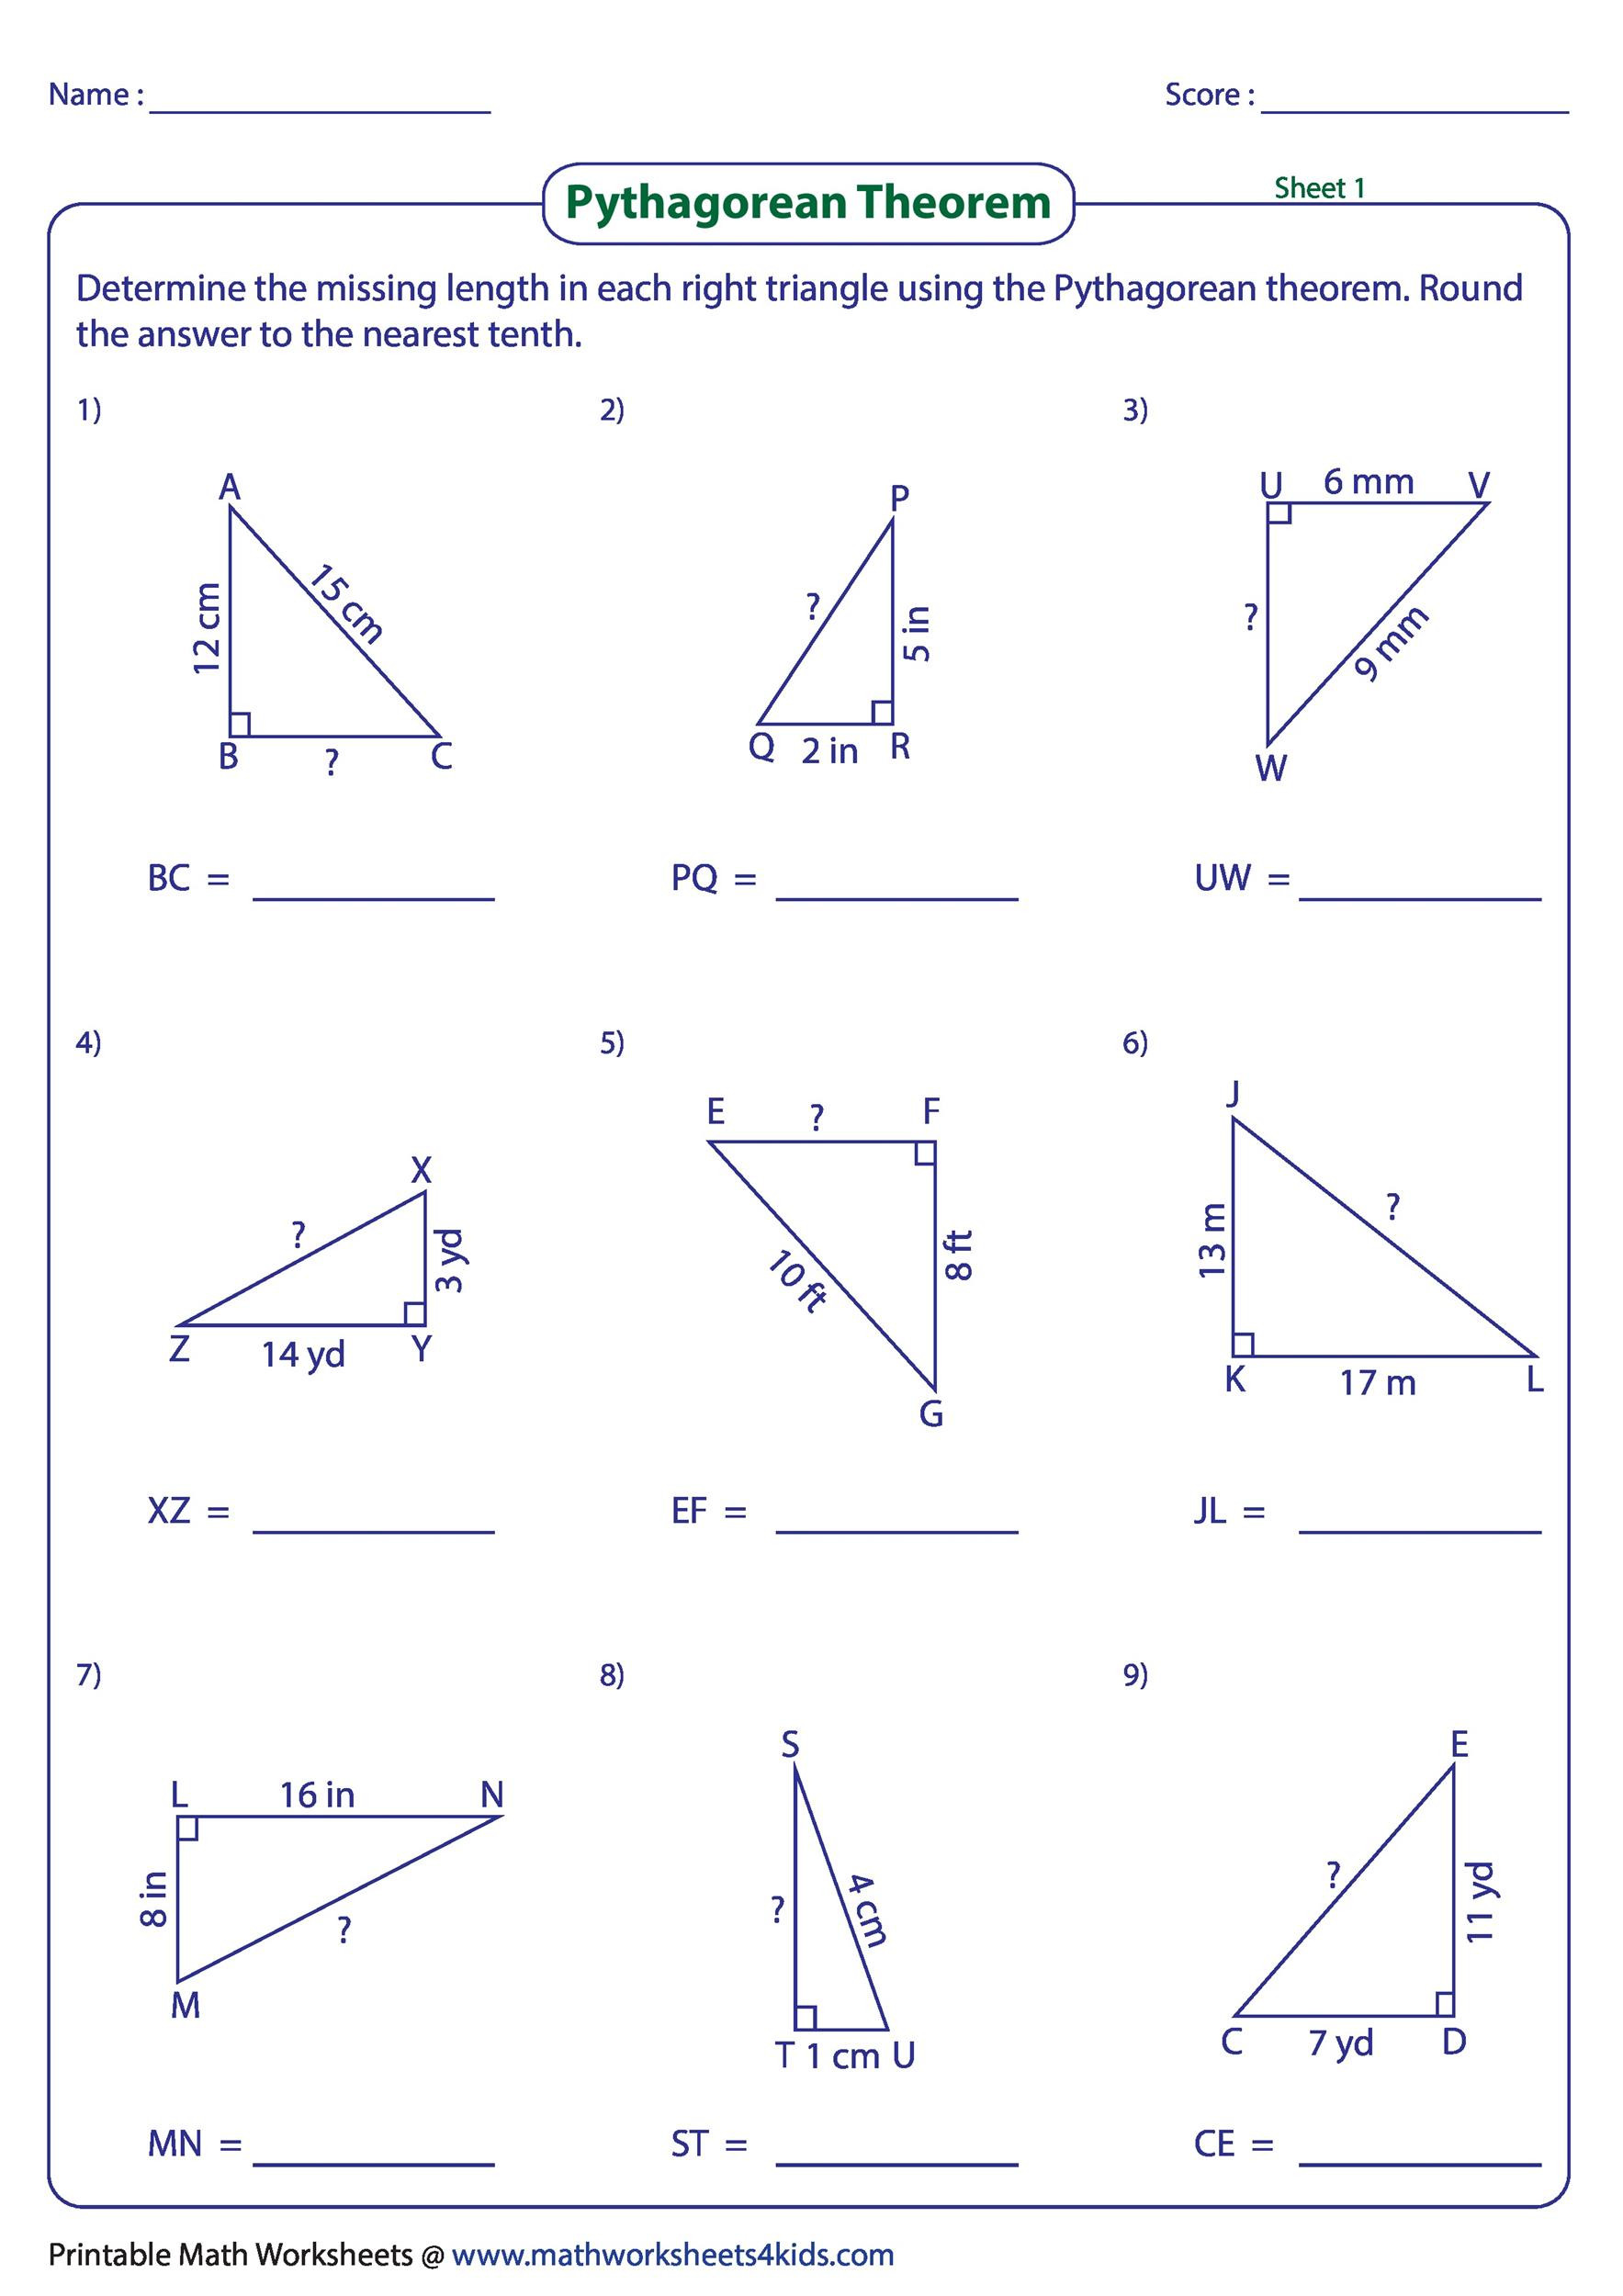 Pythagorean theorem Worksheet with Answers 34 Pythagorean theorem Worksheet Answer Key Worksheet